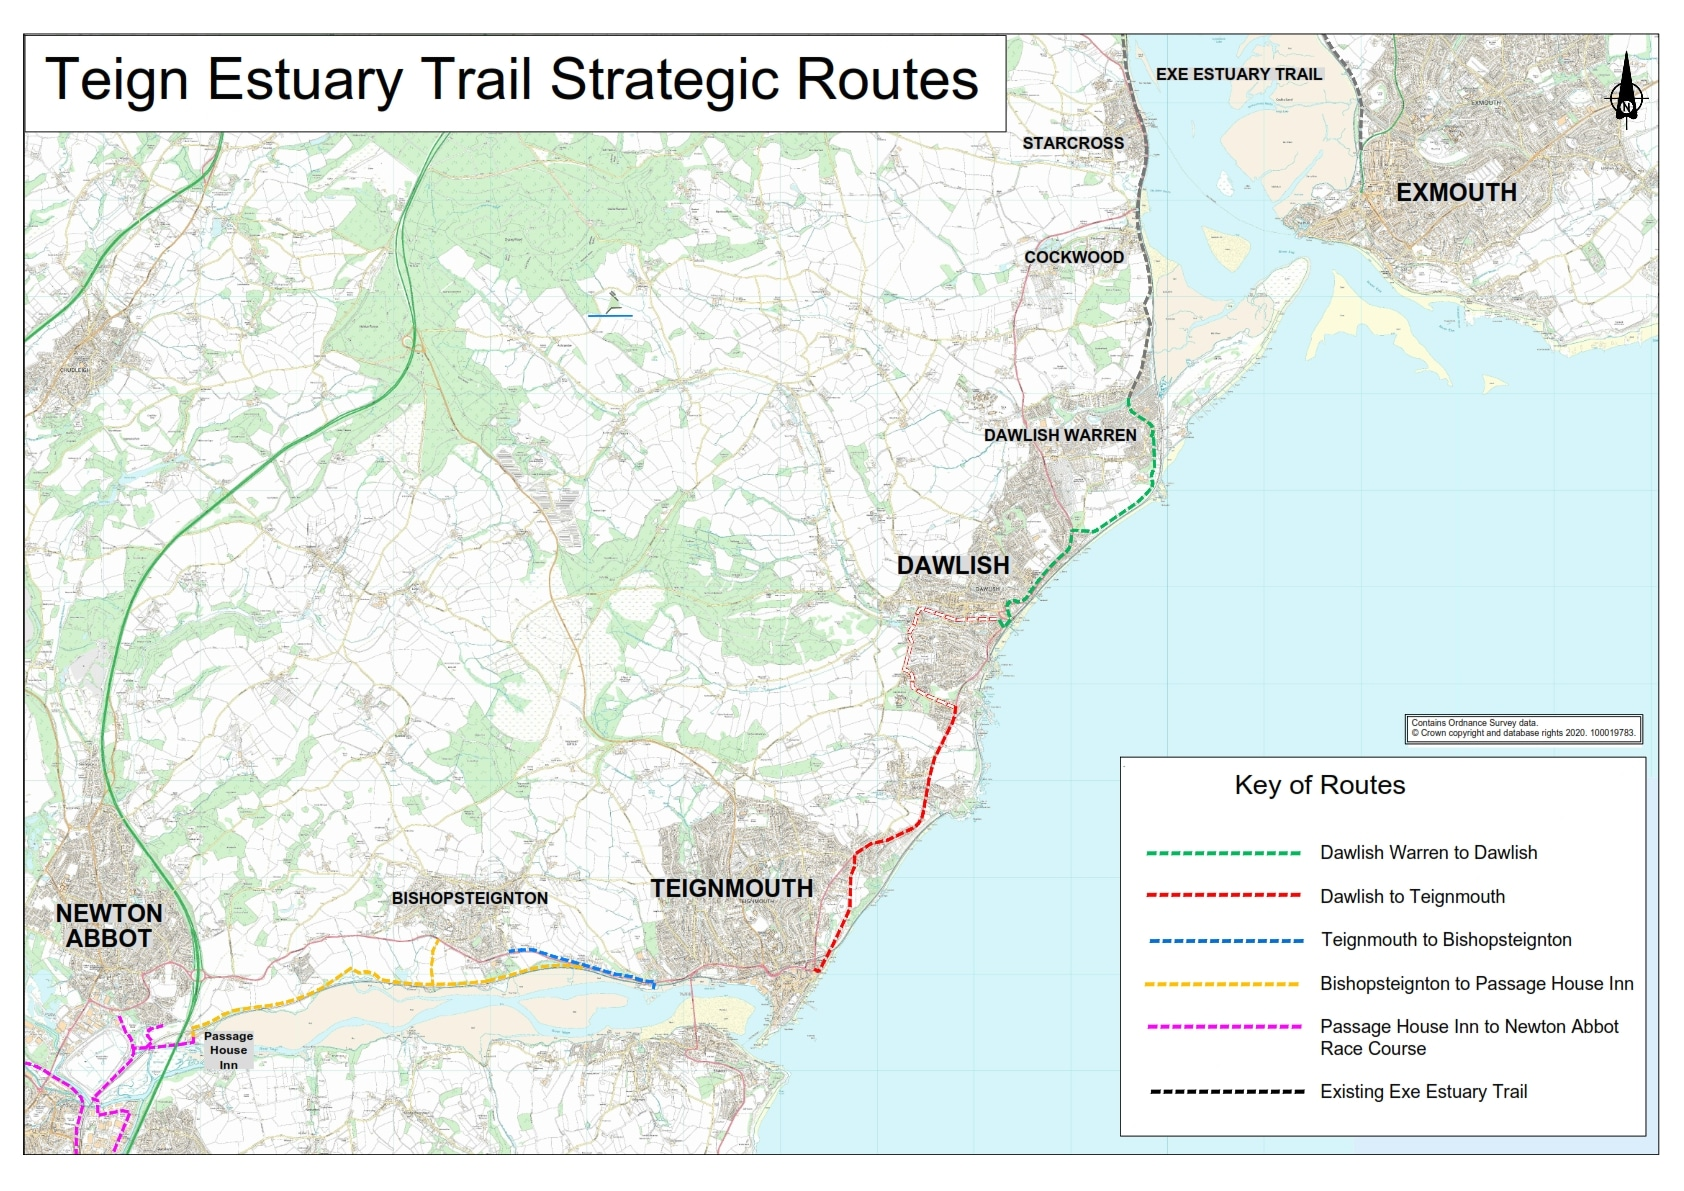 Strategic Routes from Exmouth to Newton Abbot